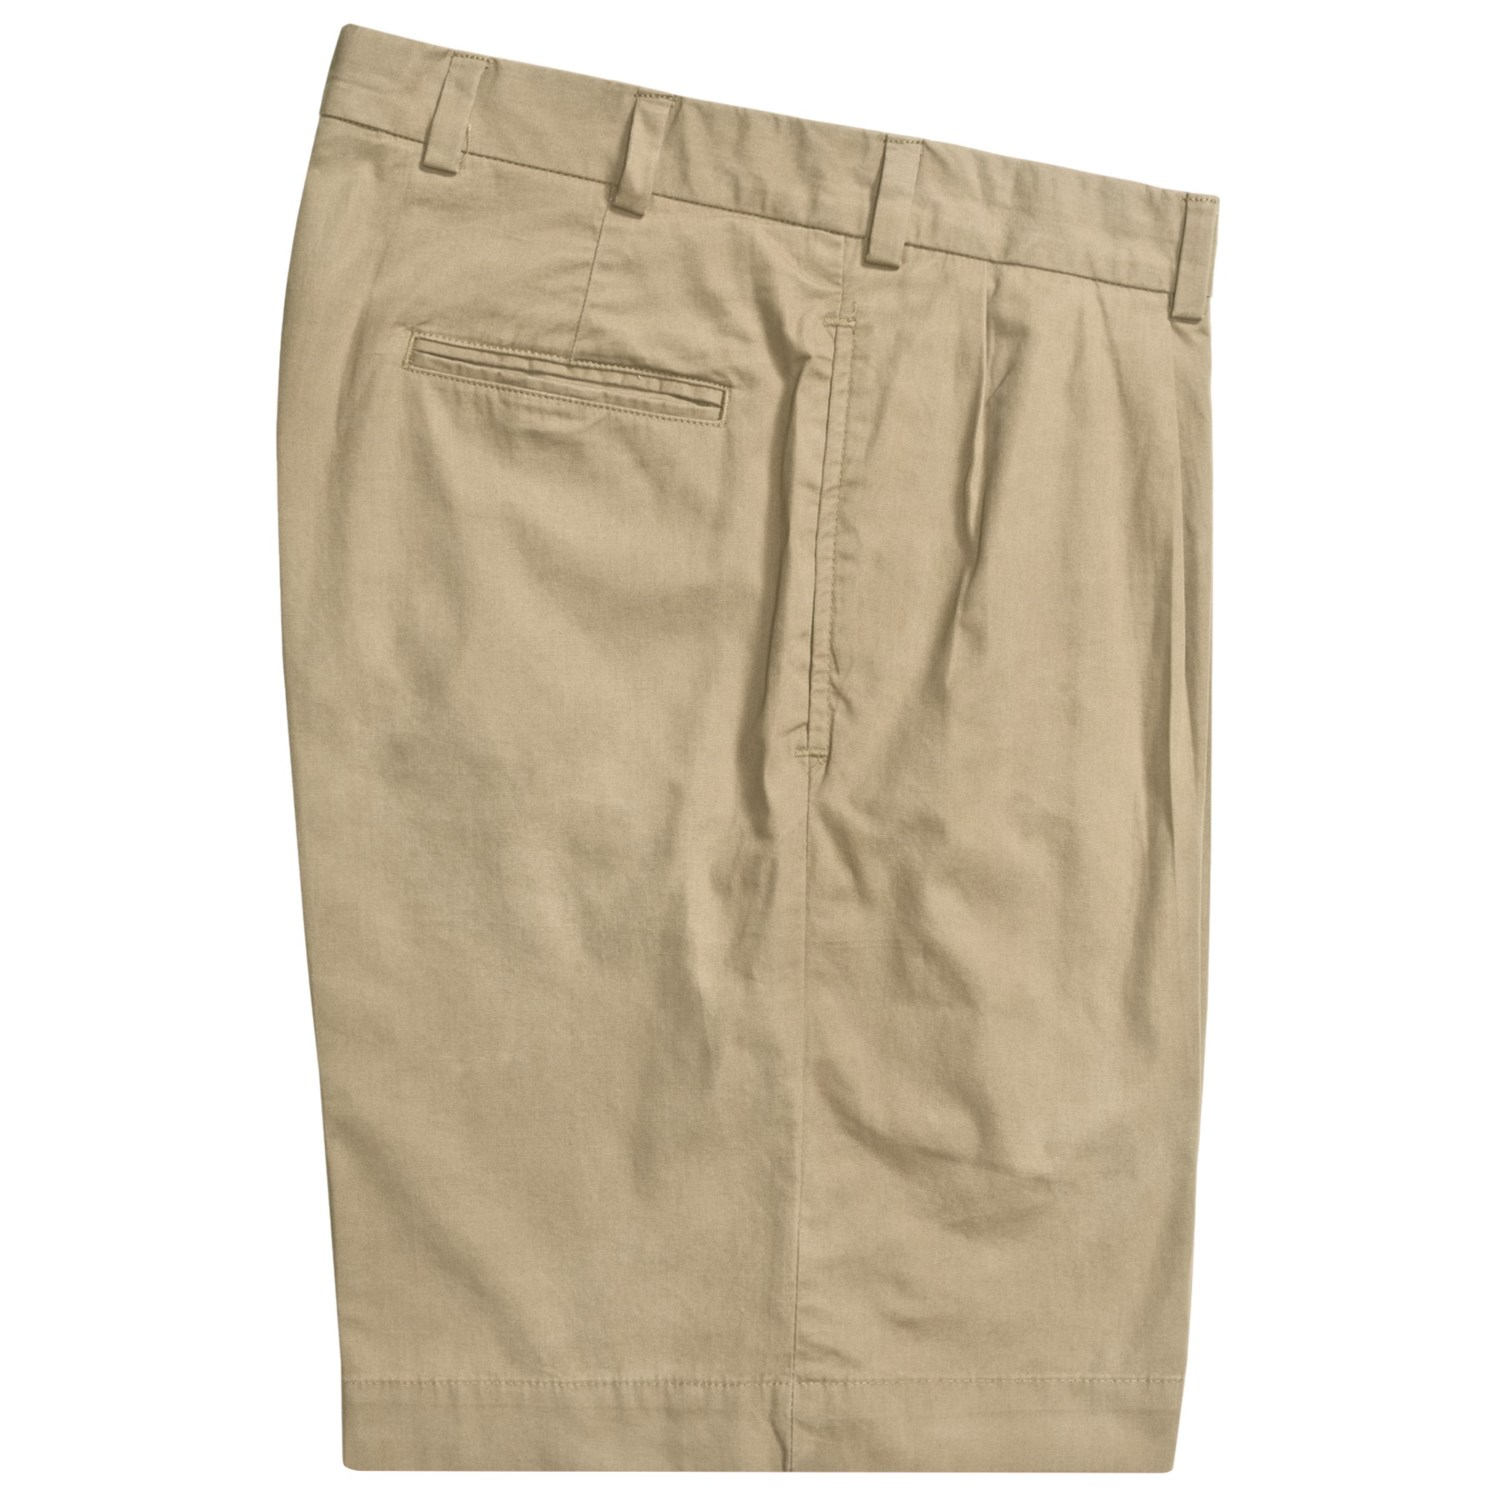 Belk has the Mens Pleated Shorts you are looking for. Free shipping on qualifying orders, plus easy returns when you shop today!